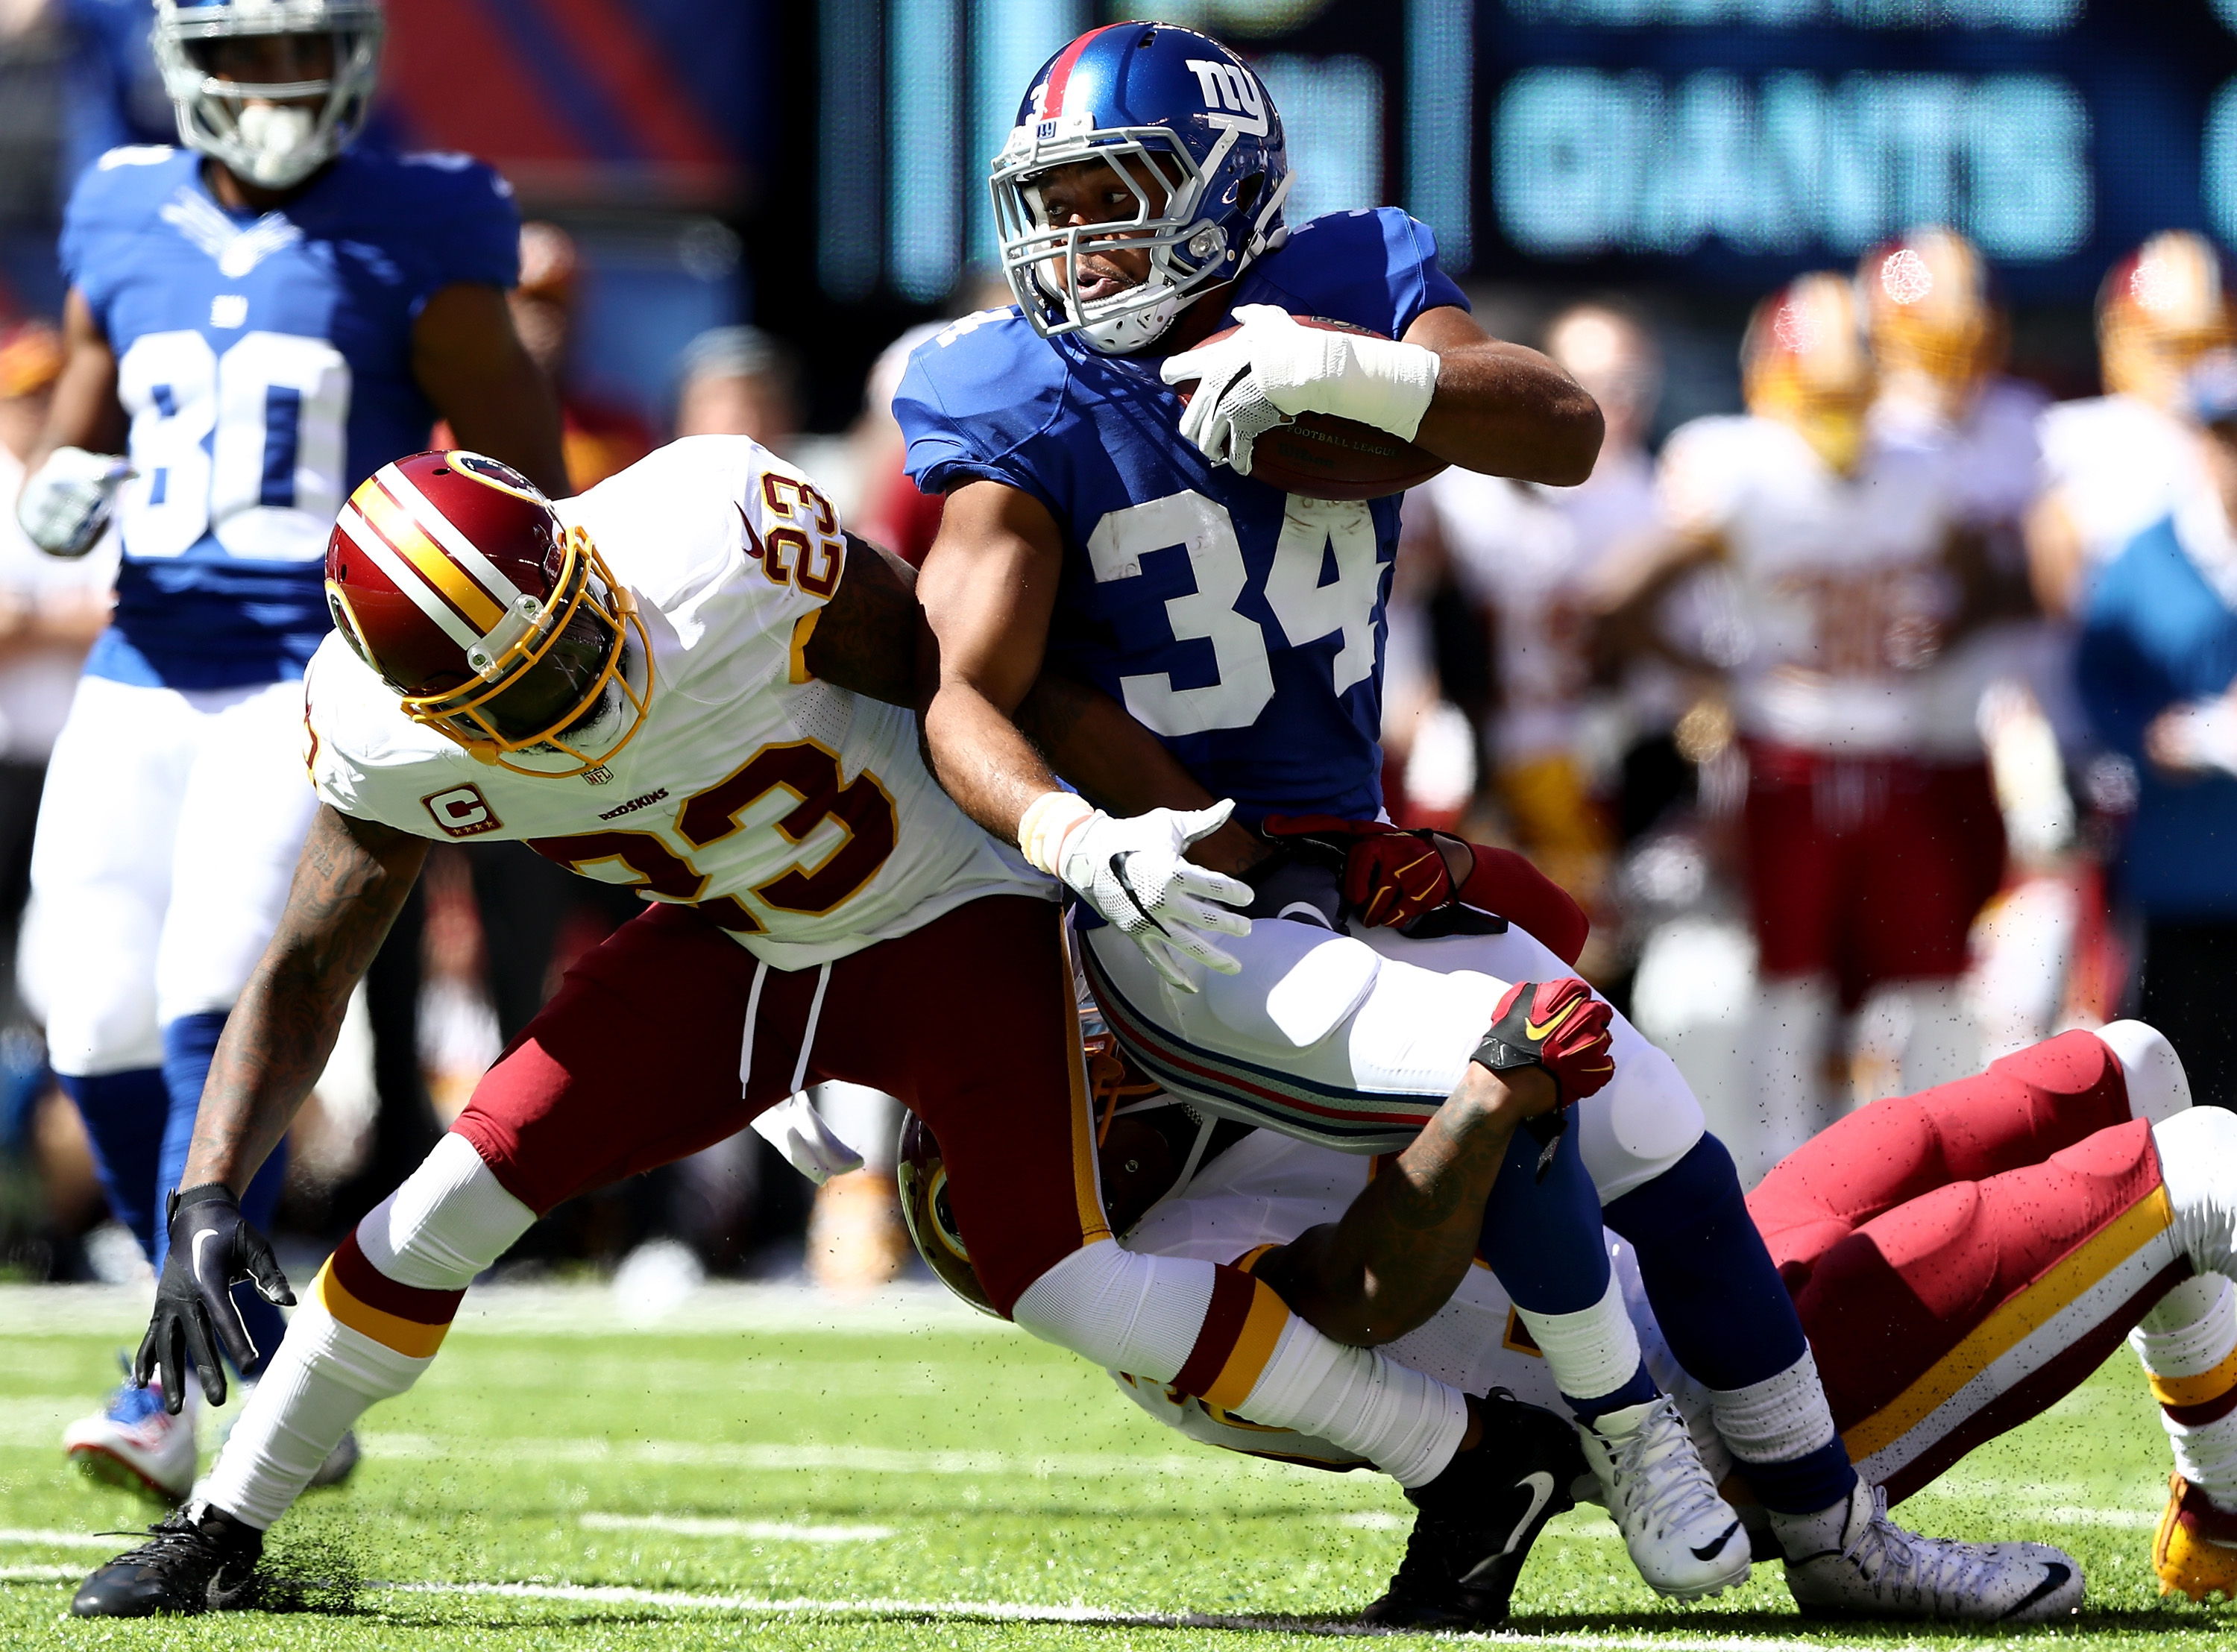 610389522-washington-redskins-v-new-york-giants.jpg